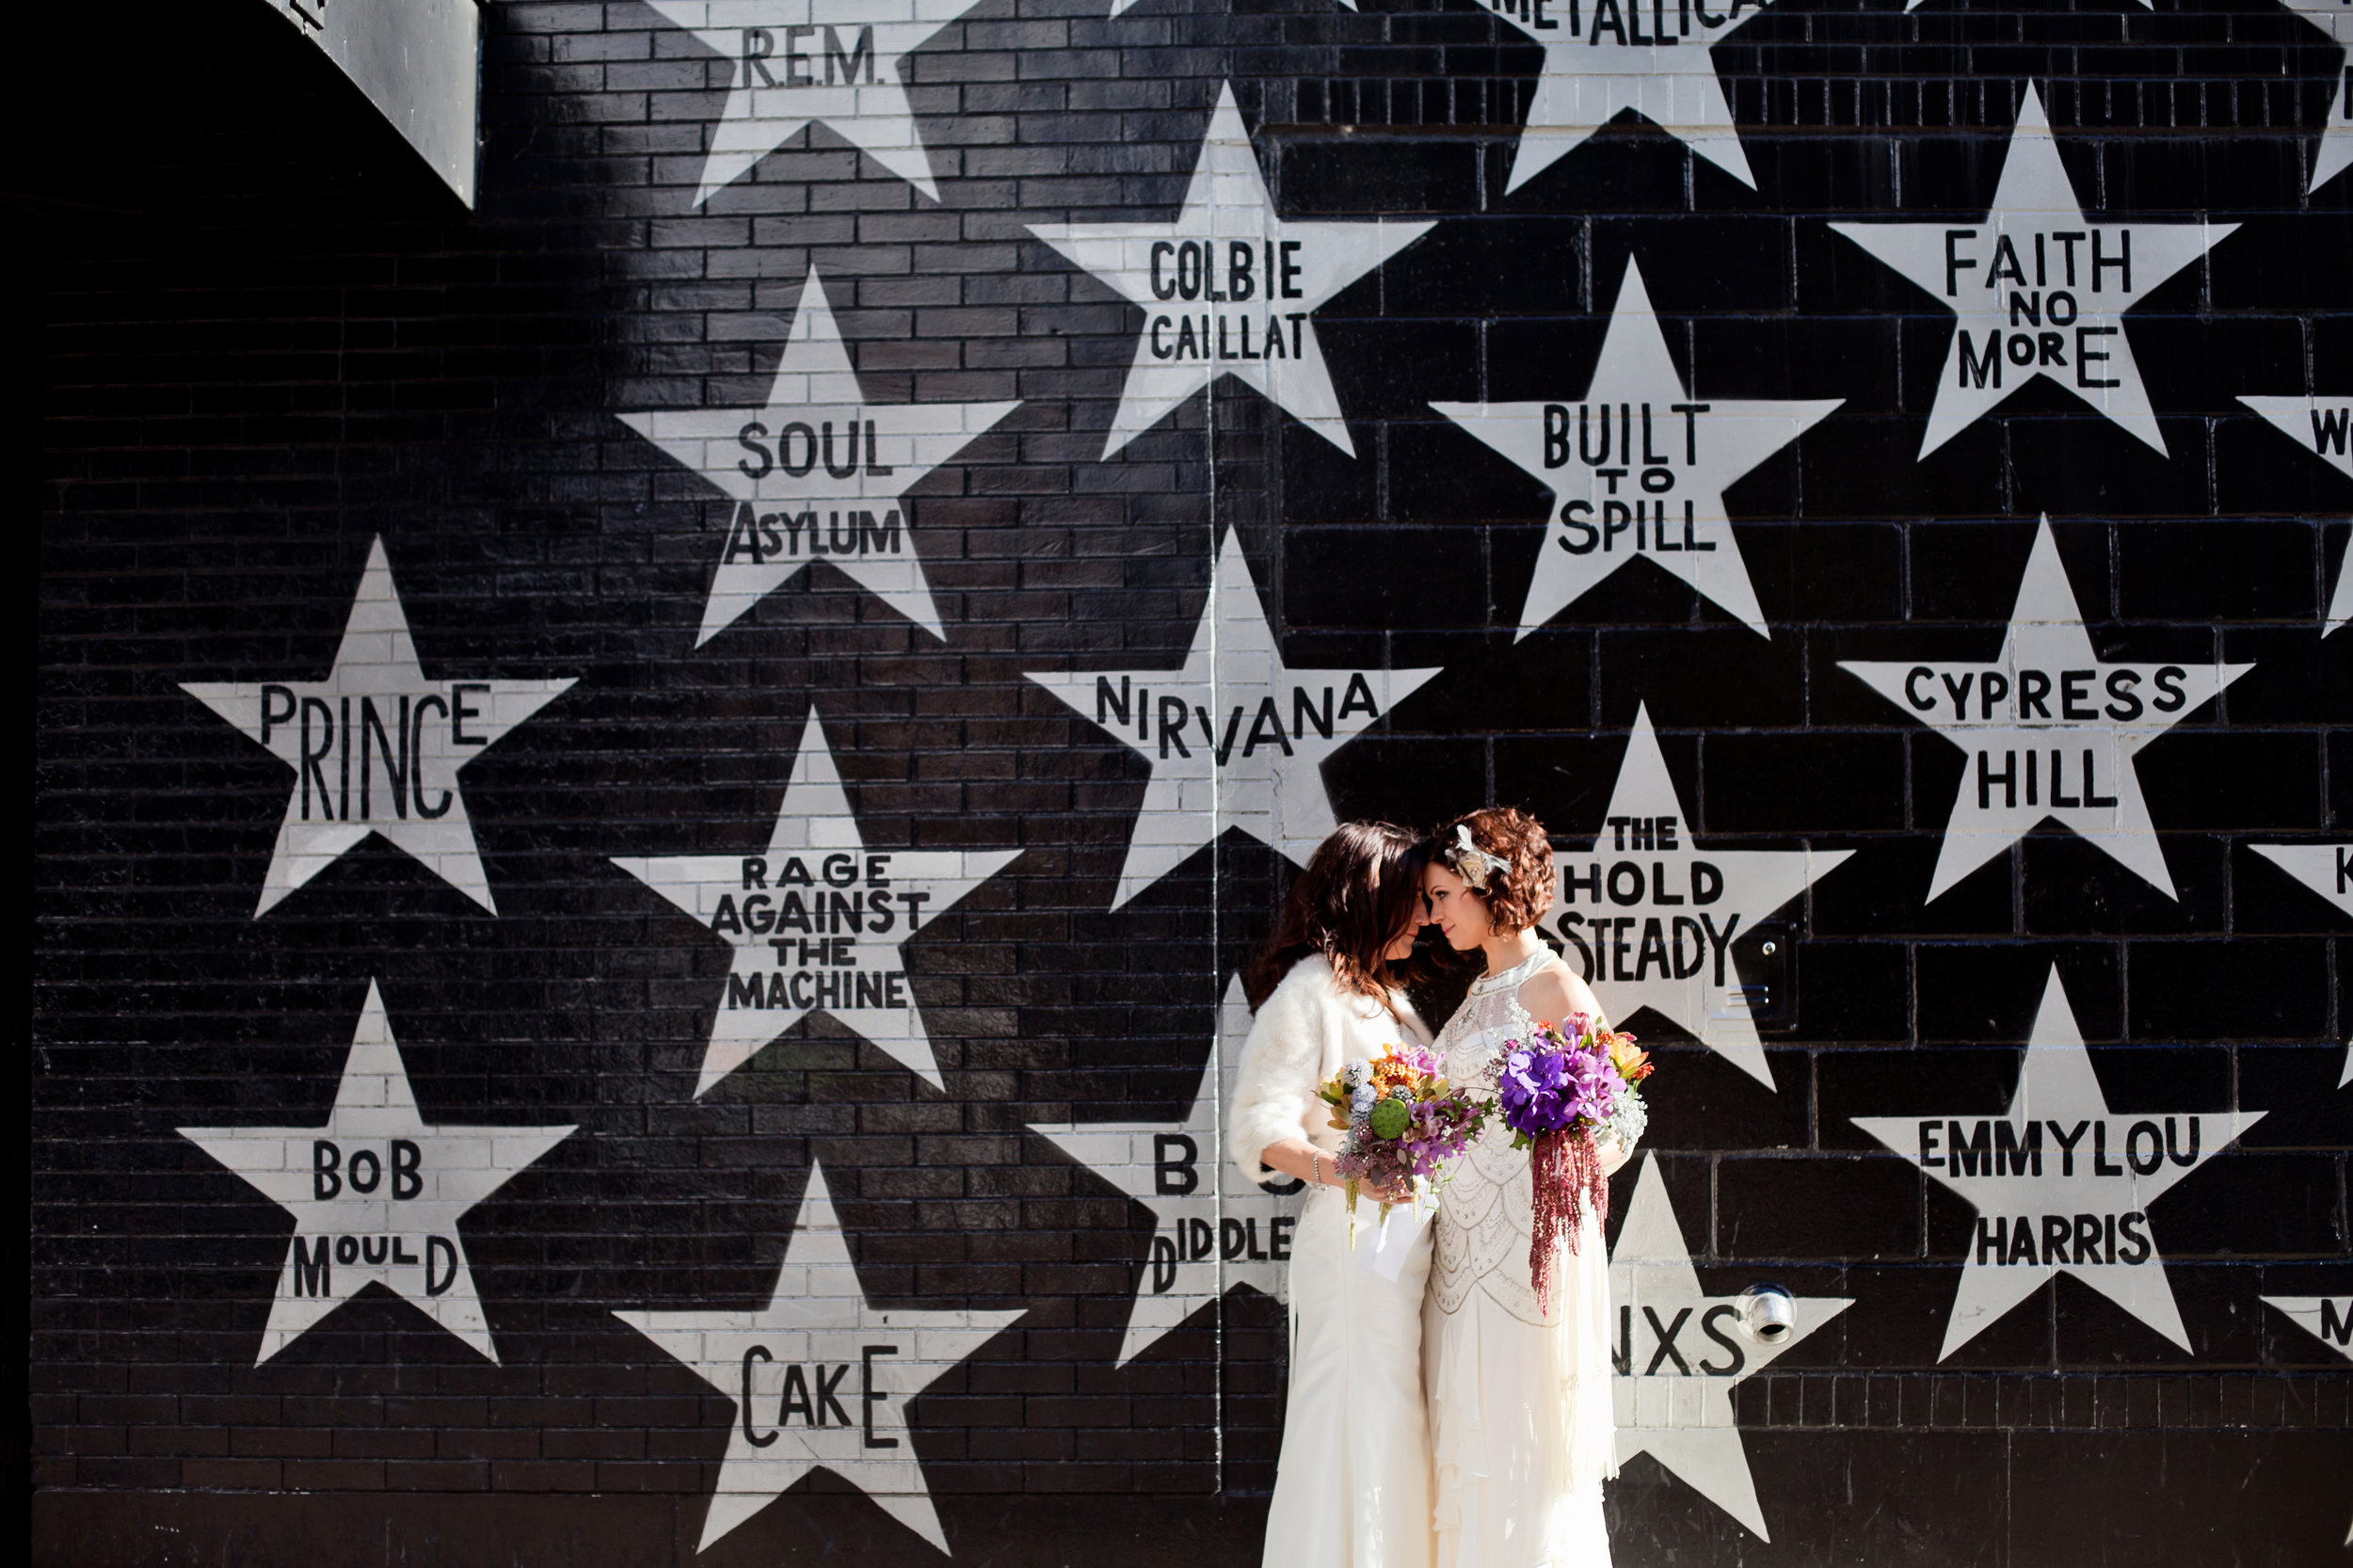 16 two brides star wall music wall unique wedding back drops candid first look shots Life Design Events .jpg